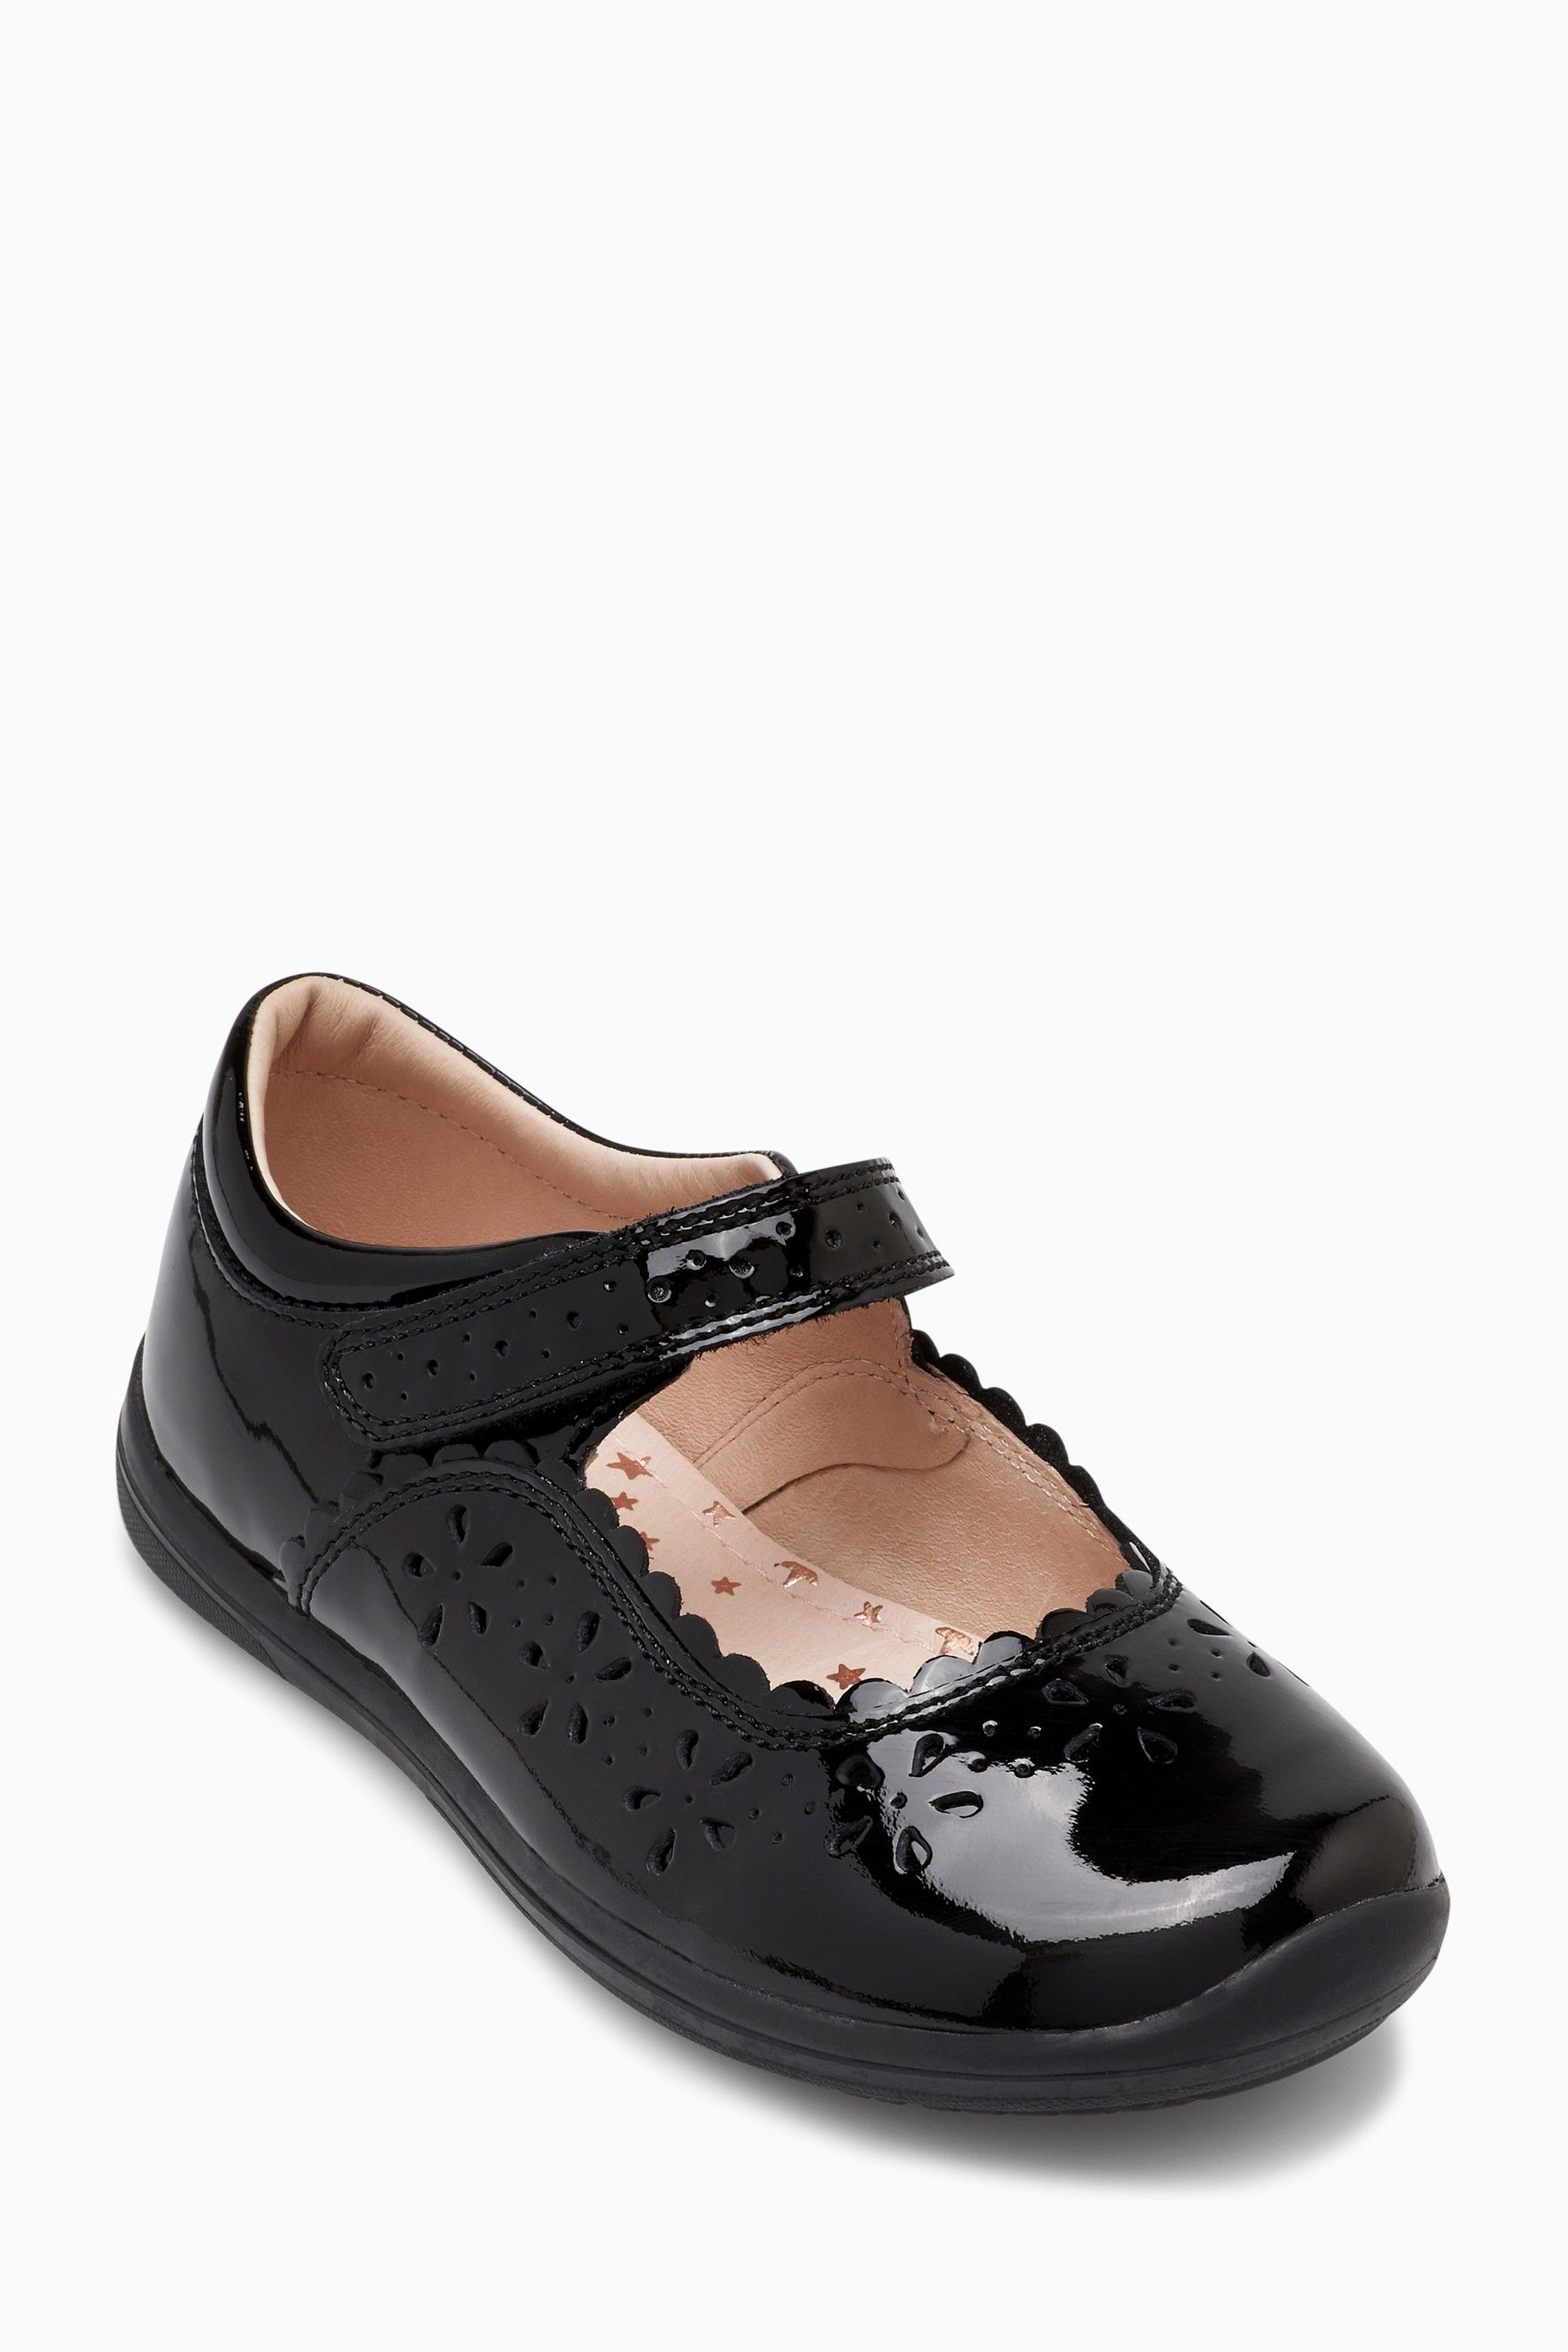 6421331130a80 Girls Next Black Patent Cut-Out Mary Jane Shoes (Older) - Black ...